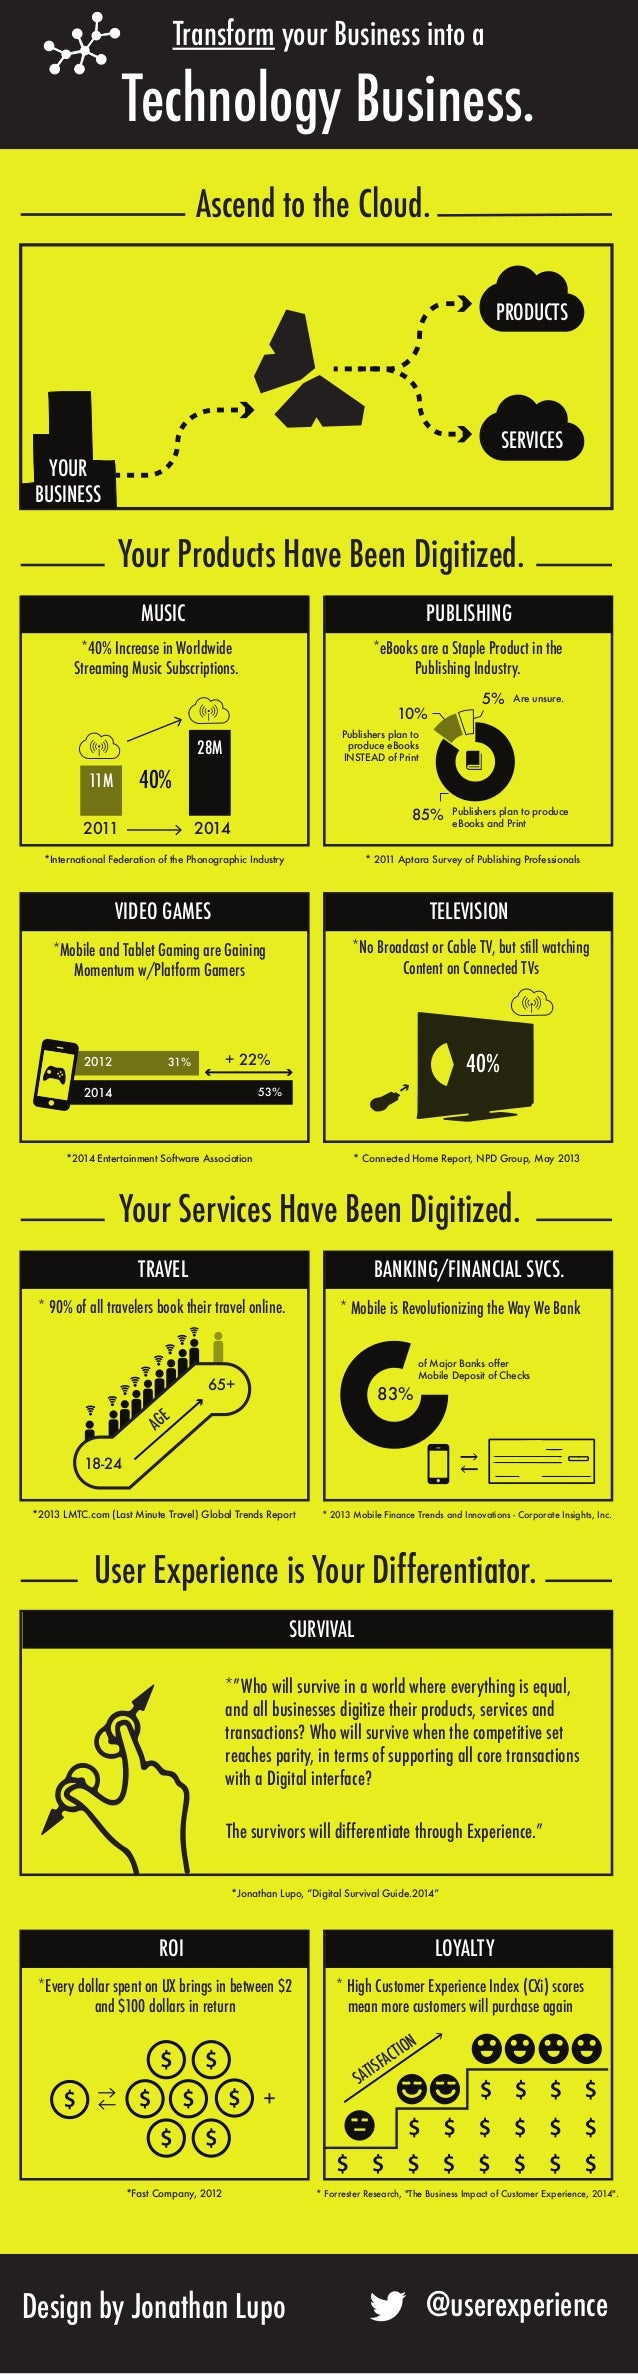 You are Now in the Technology Business [INFOGRAPHIC]